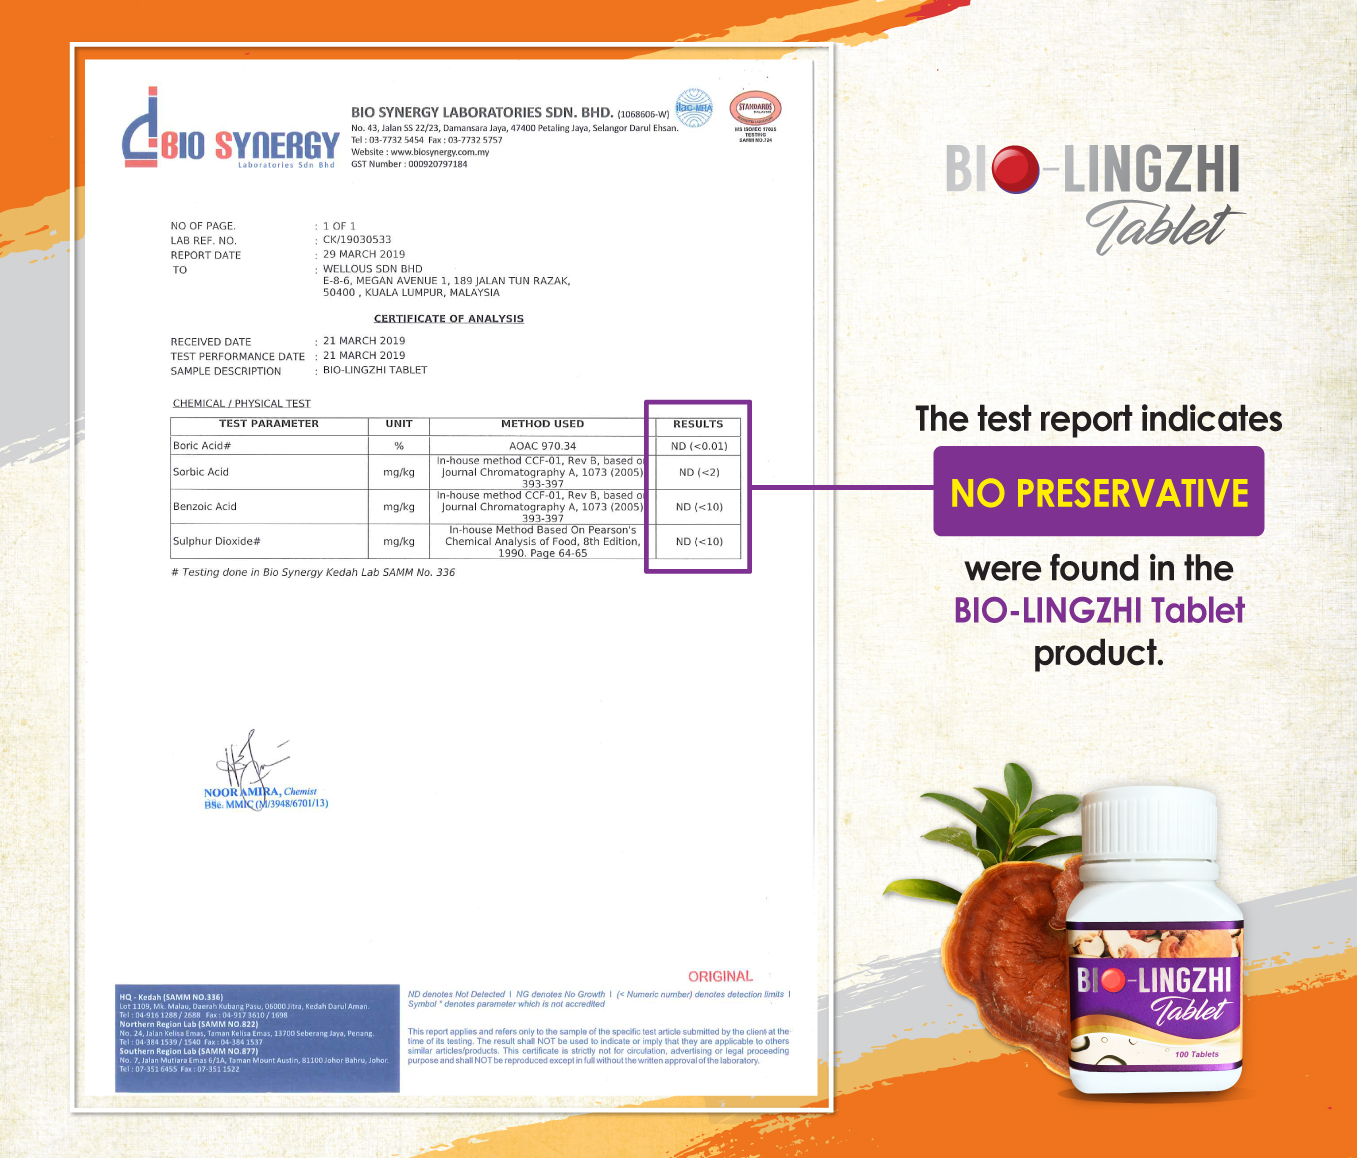 Bio-LingZhi_BioSynergy-Preservative-certificate_ENG